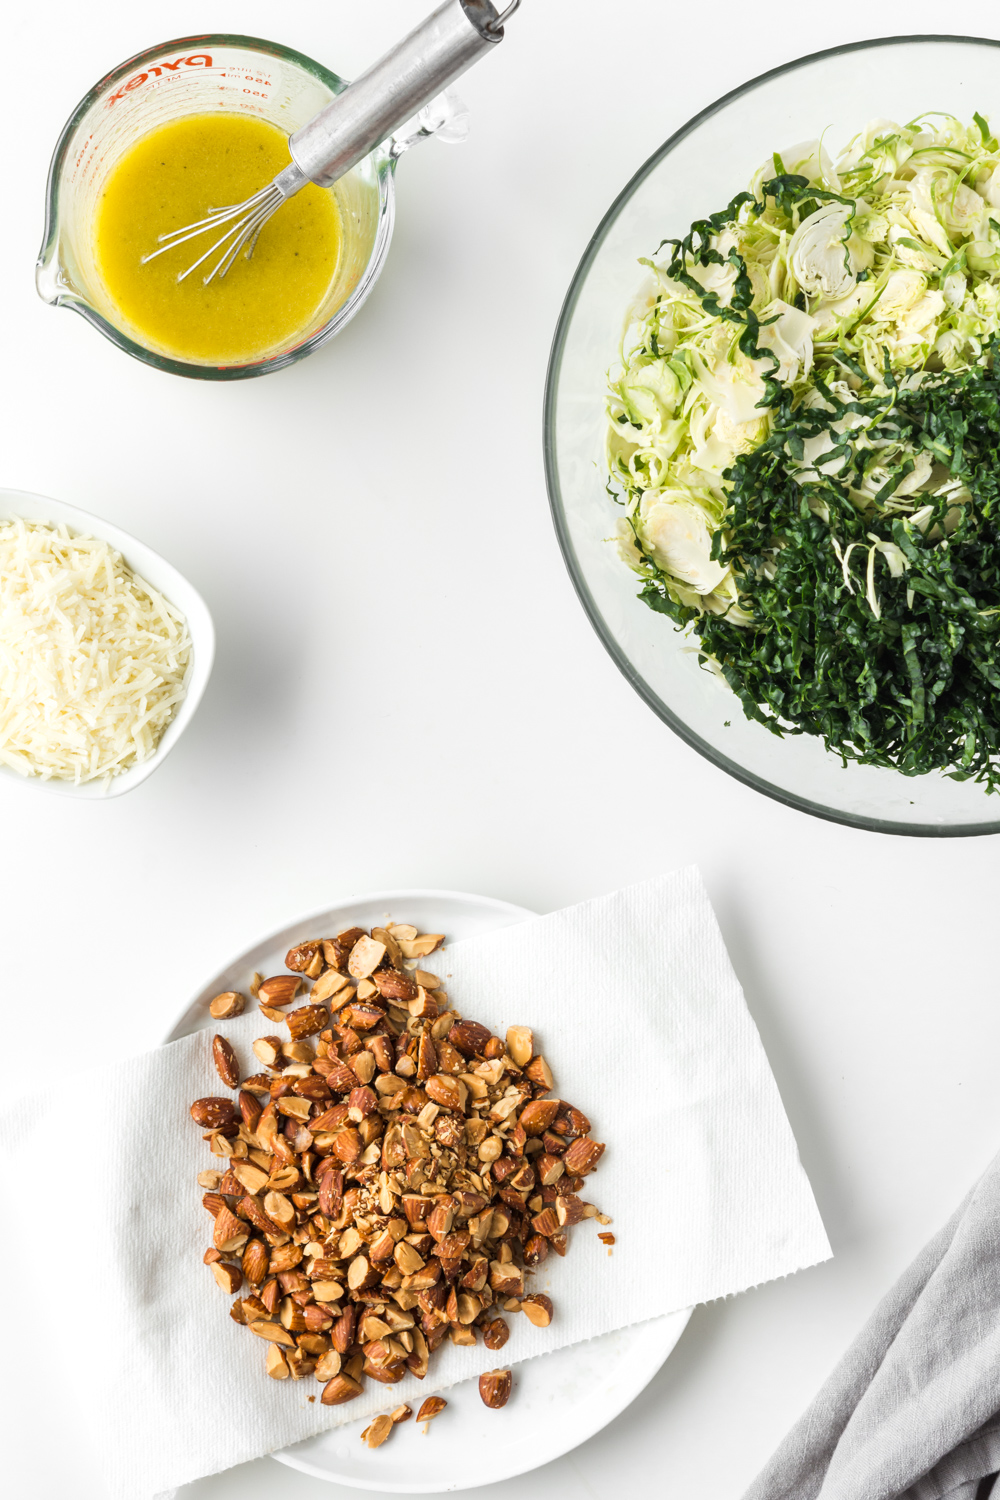 assemble kale and brussels sprout salad.jpg